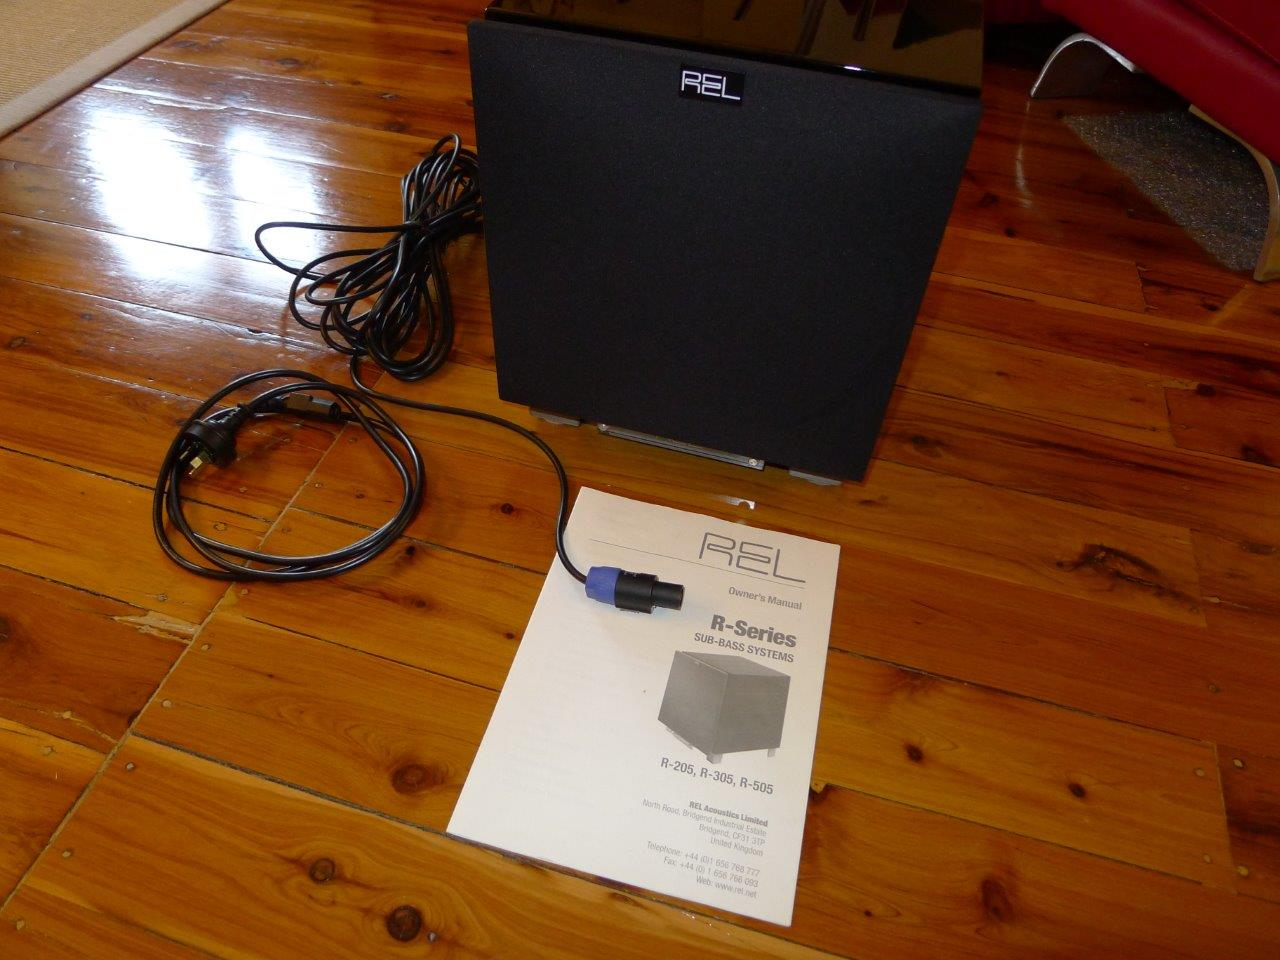 SOLD: FS: Rel R-205 Subwoofer – Sealed Box - Classifieds